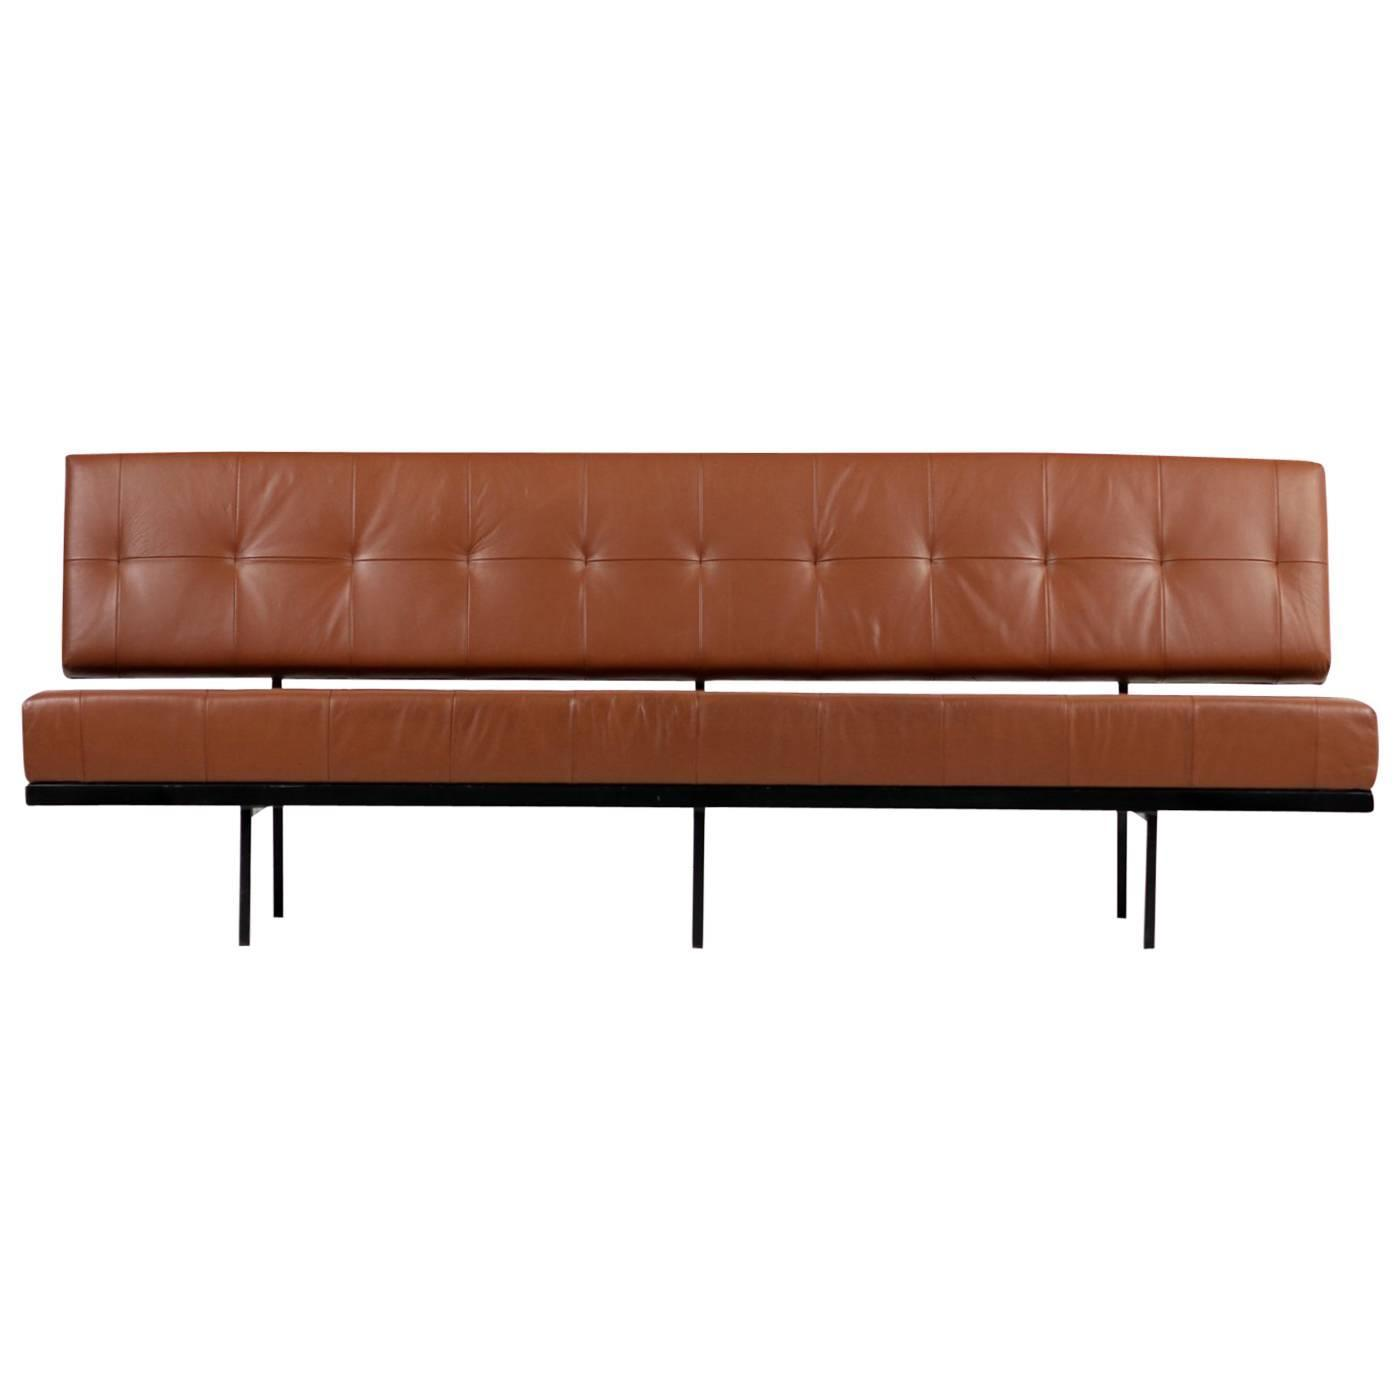 Florence Knoll Sofas 54 For Sale at 1stdibs